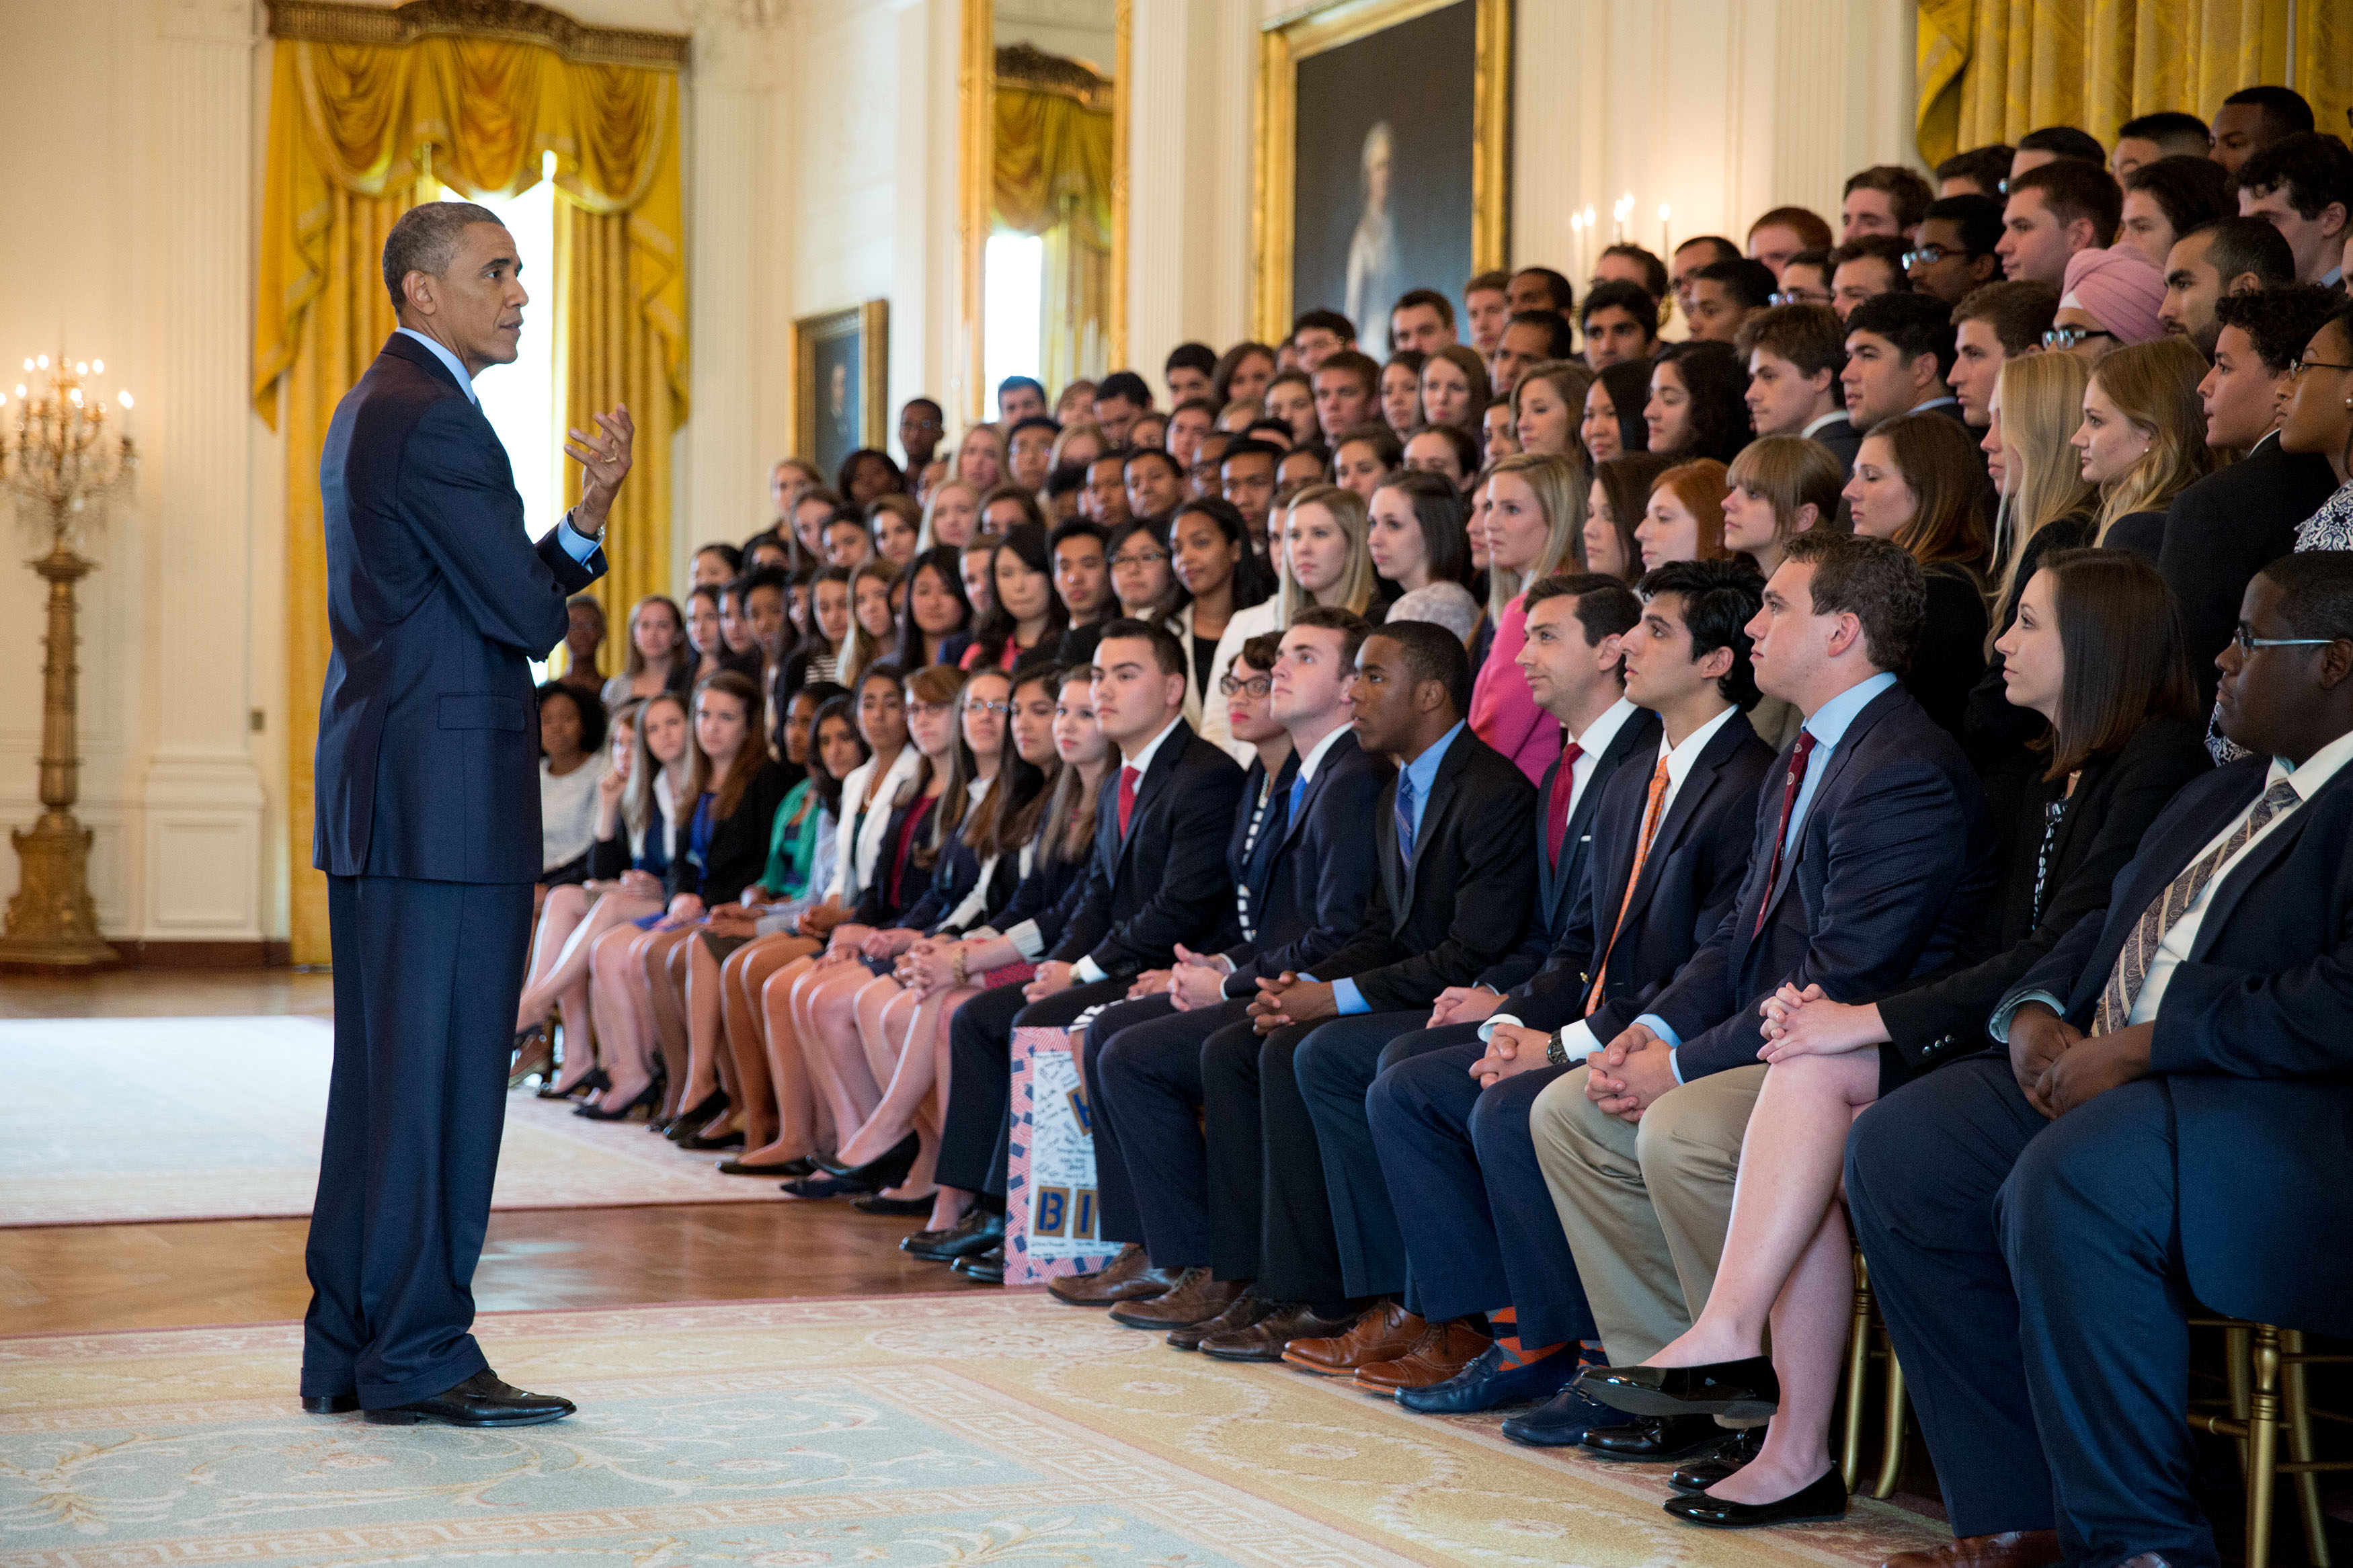 Looking Back on My White House Internship: | whitehouse.gov